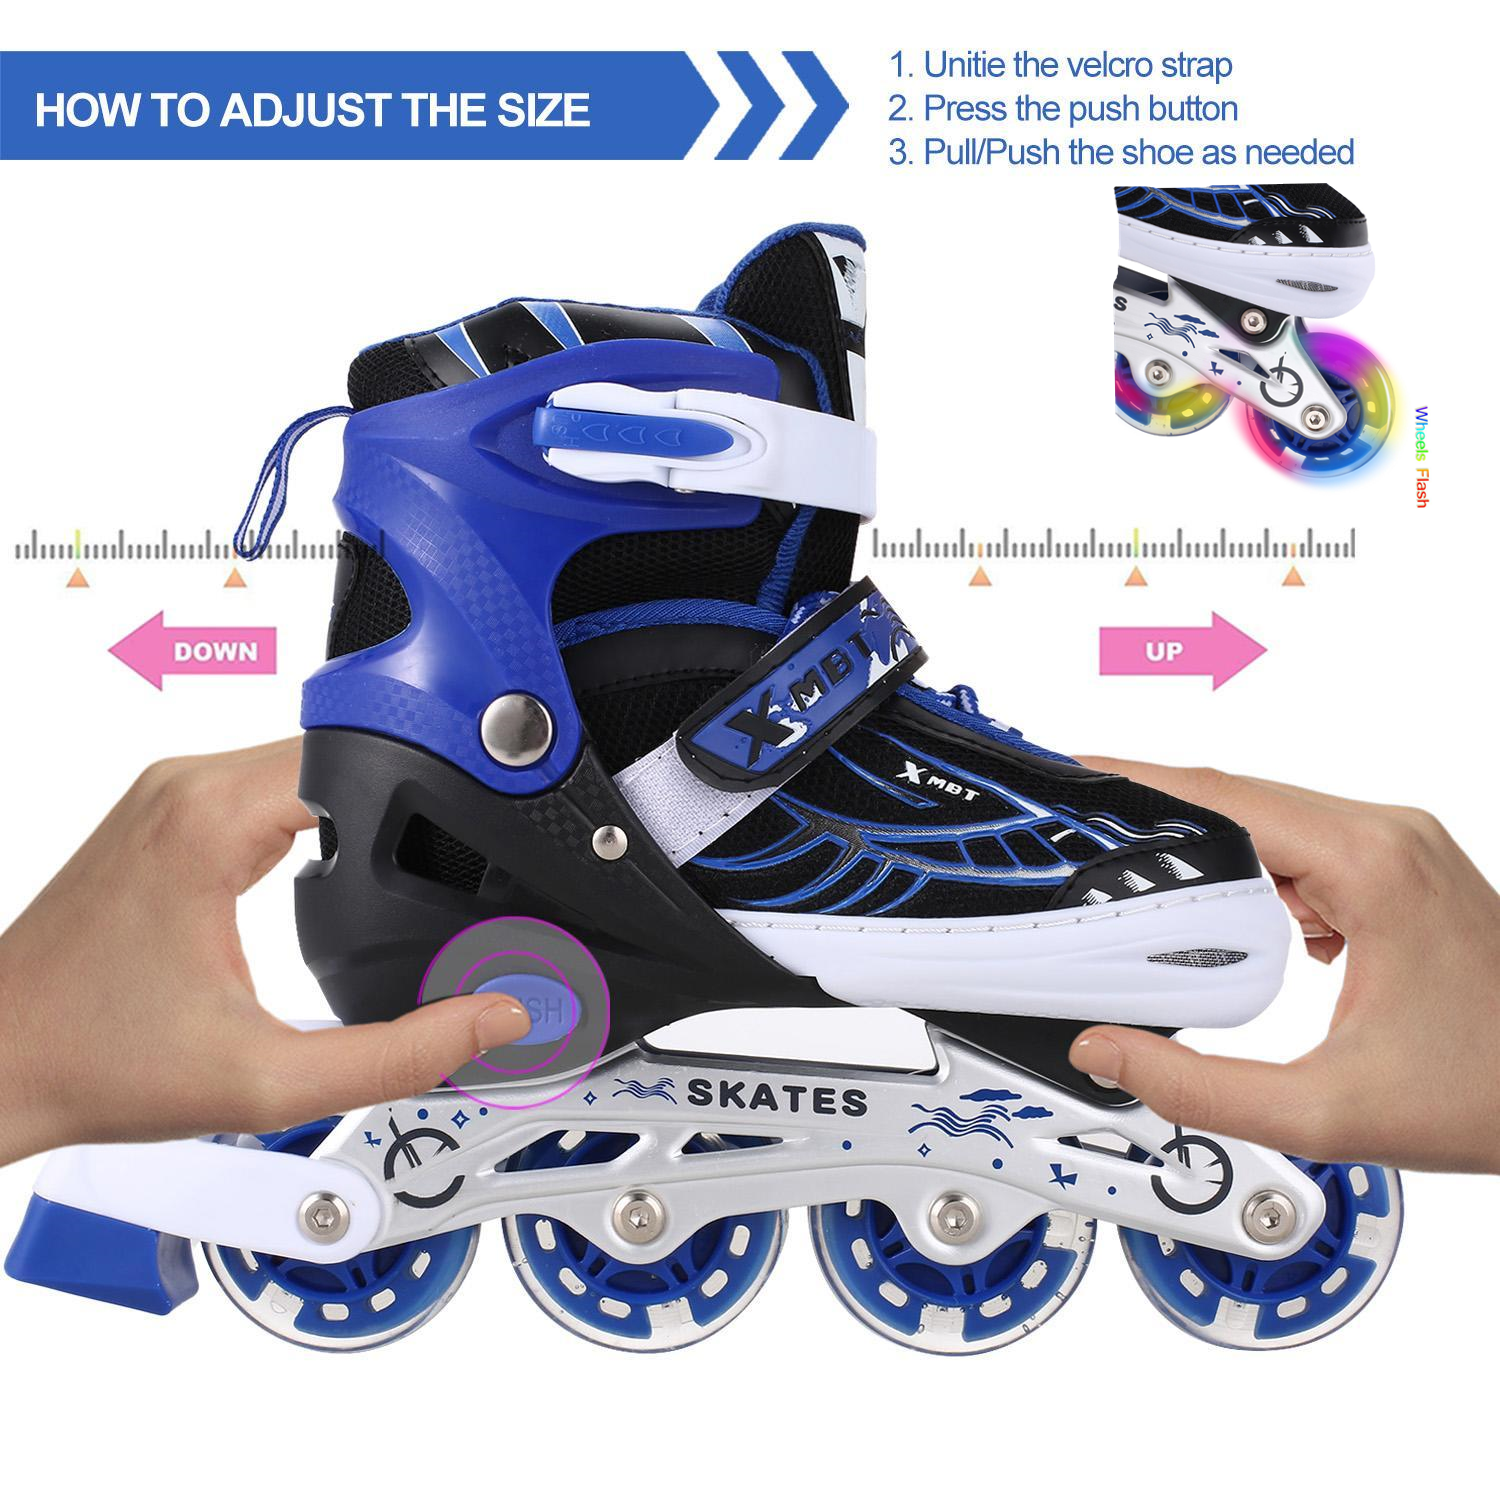 2019 The Newest! Adjustable Inline Skates for Women Kids with LED Wheels Beginner Rollerblades Fun Illuminating Roller Skates Women Kids Boys and girls Size 12J-8 Outdoor Indoor Hifahion